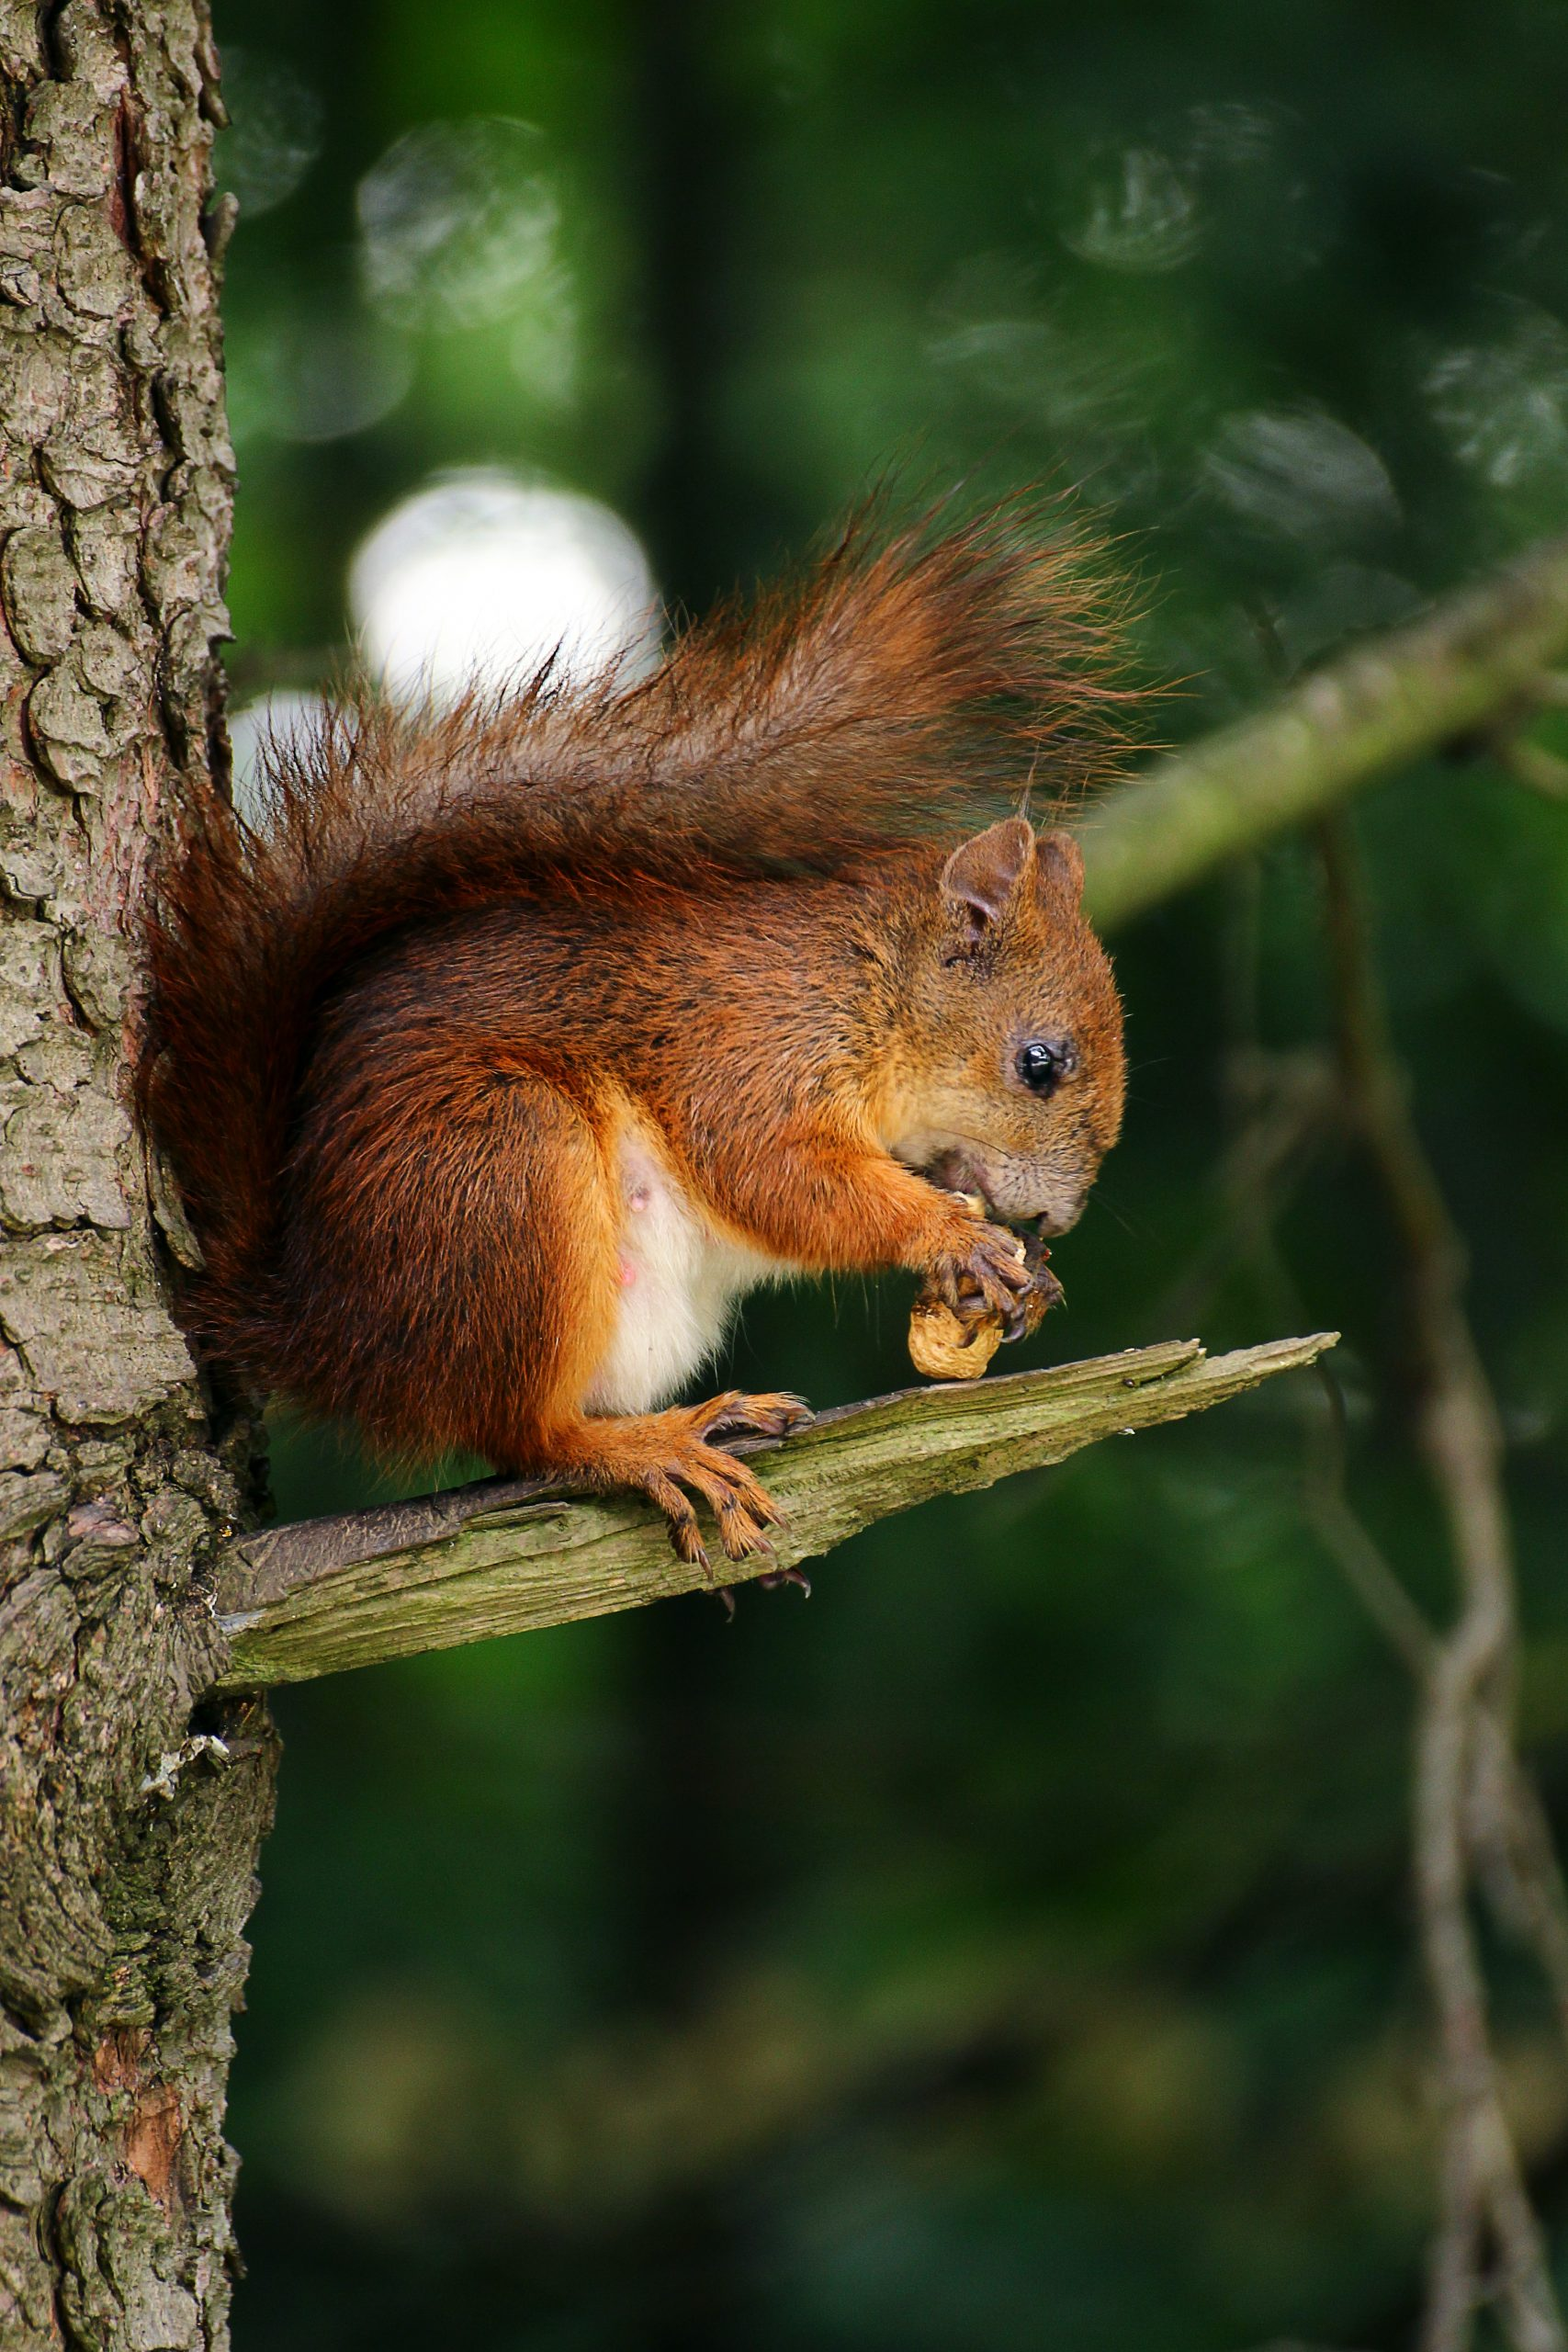 wallpaper Brown squirrel on branch of tree eating nut